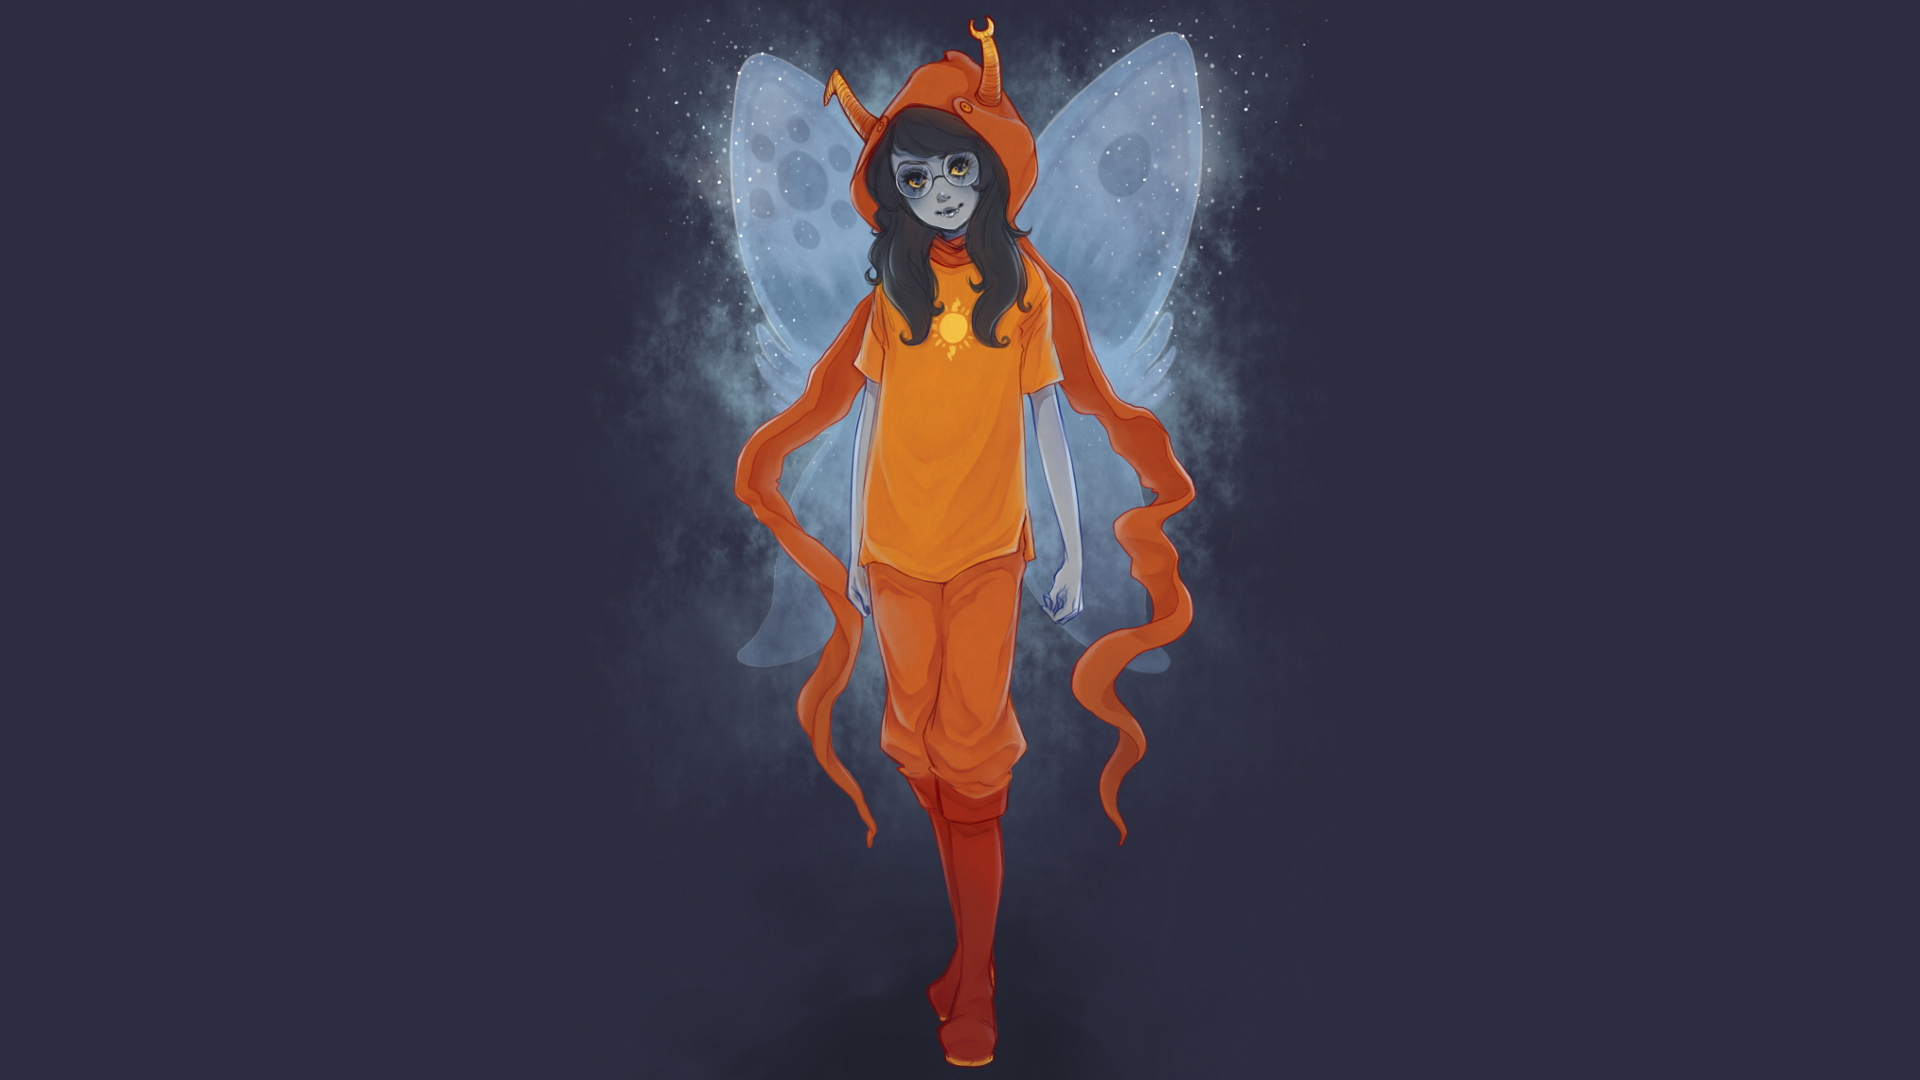 Homestuck HD Wallpaper 1920x1080 ID47472   WallpaperVortexcom 1920x1080